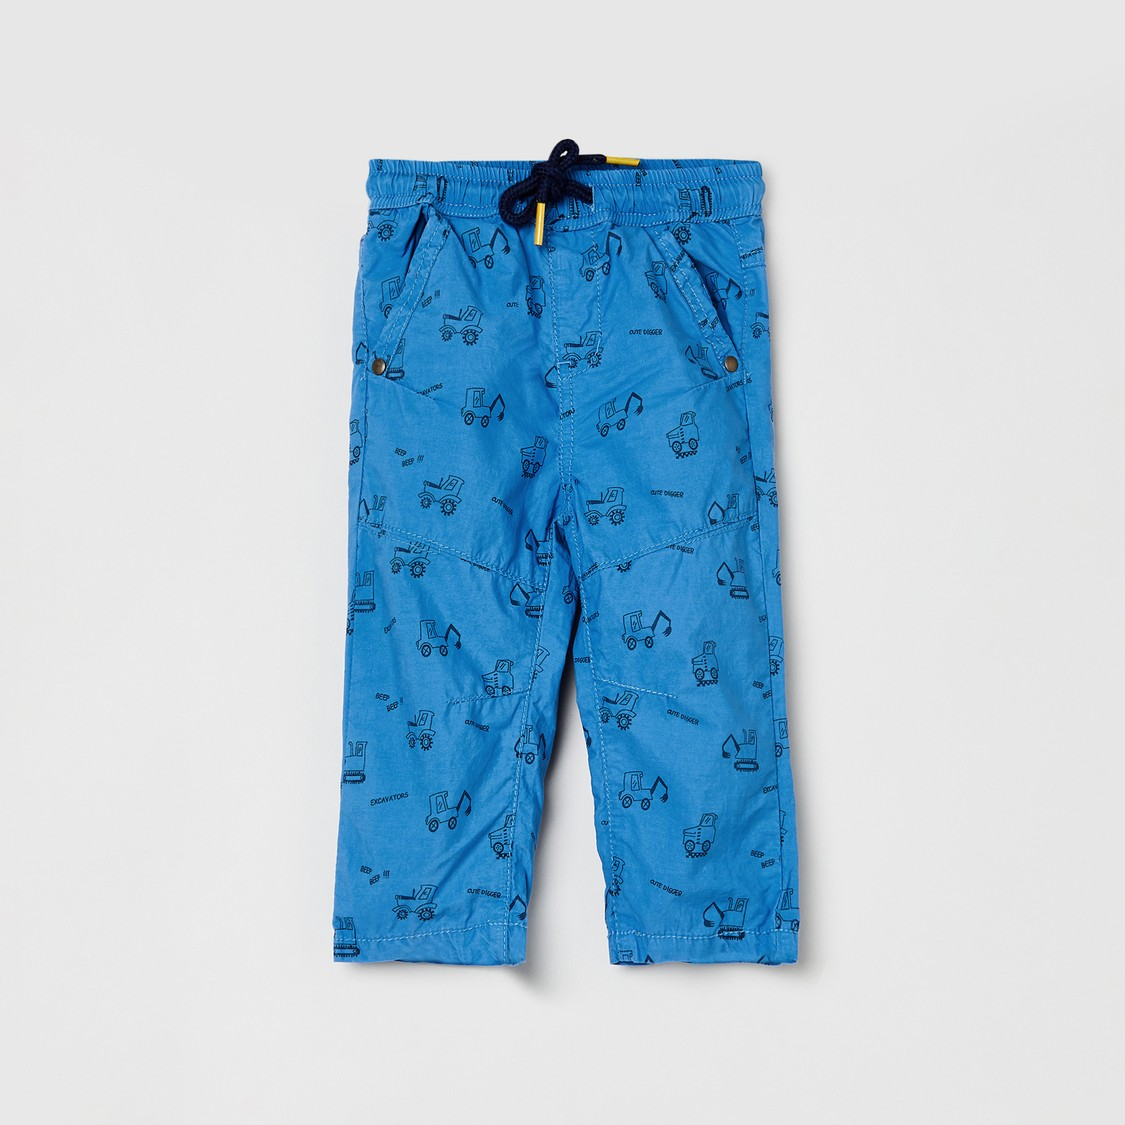 MAX Printed Trousers with Slant Pockets